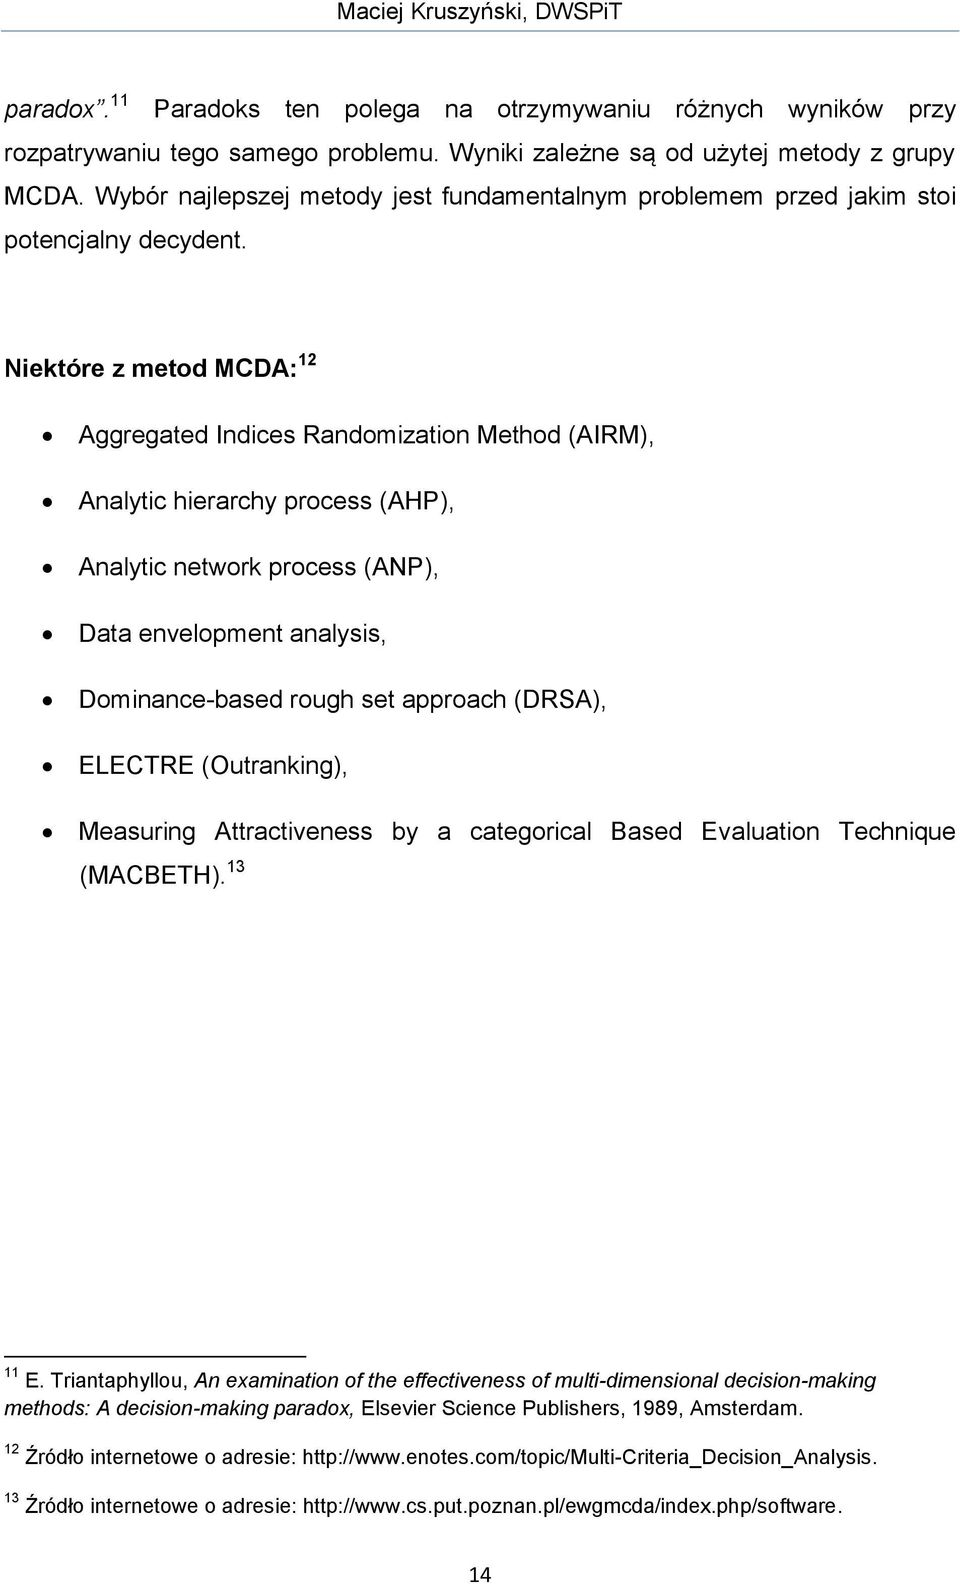 Niektóre z metod MCDA: 12 Aggregated Indices Randomization Method (AIRM), Analytic hierarchy process (AHP), Analytic network process (ANP), Data envelopment analysis, Dominance-based rough set